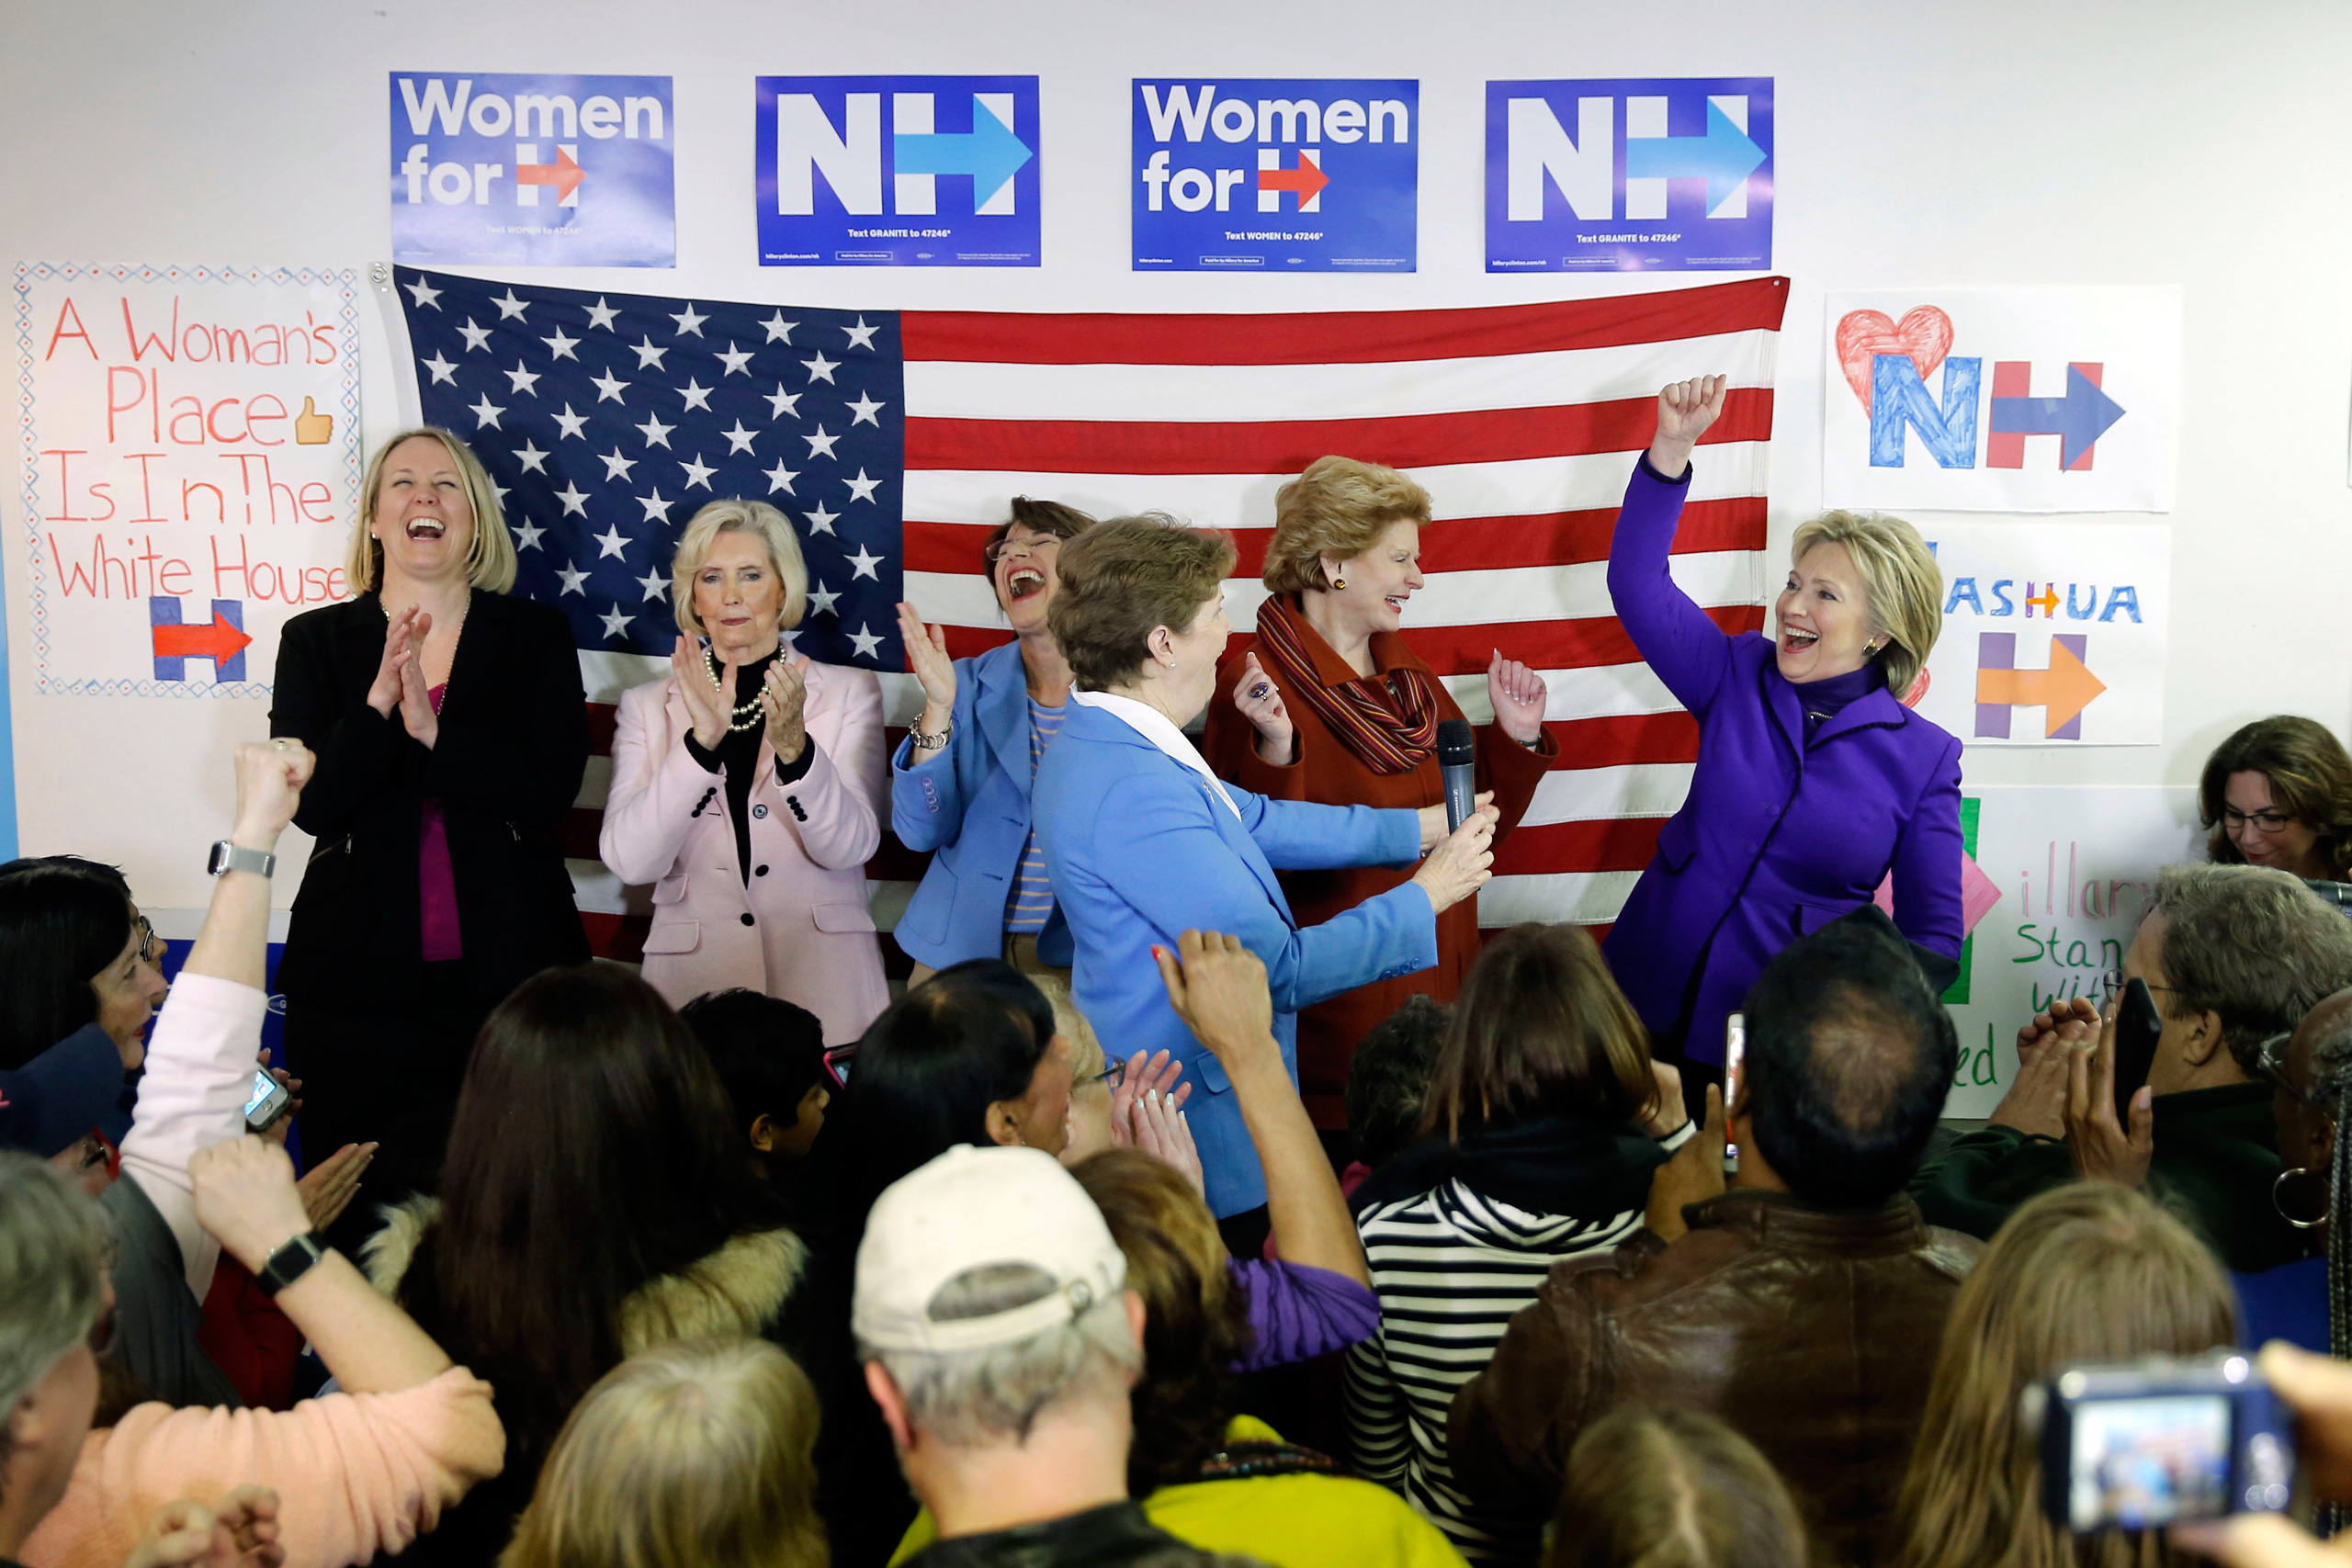 Hillary Clinton is joined on stage by EMILY's List President Stephanie Schriock, left, Lily Ledbetter, Sen. Amy Klobuchar, D-Minn., Jeanne Shaheen, D-N.H., and Sen. Debbie Stabenow, D-Mich., during a visit to a campaign office in Nashua, N.H., on Feb. 5, 2016.